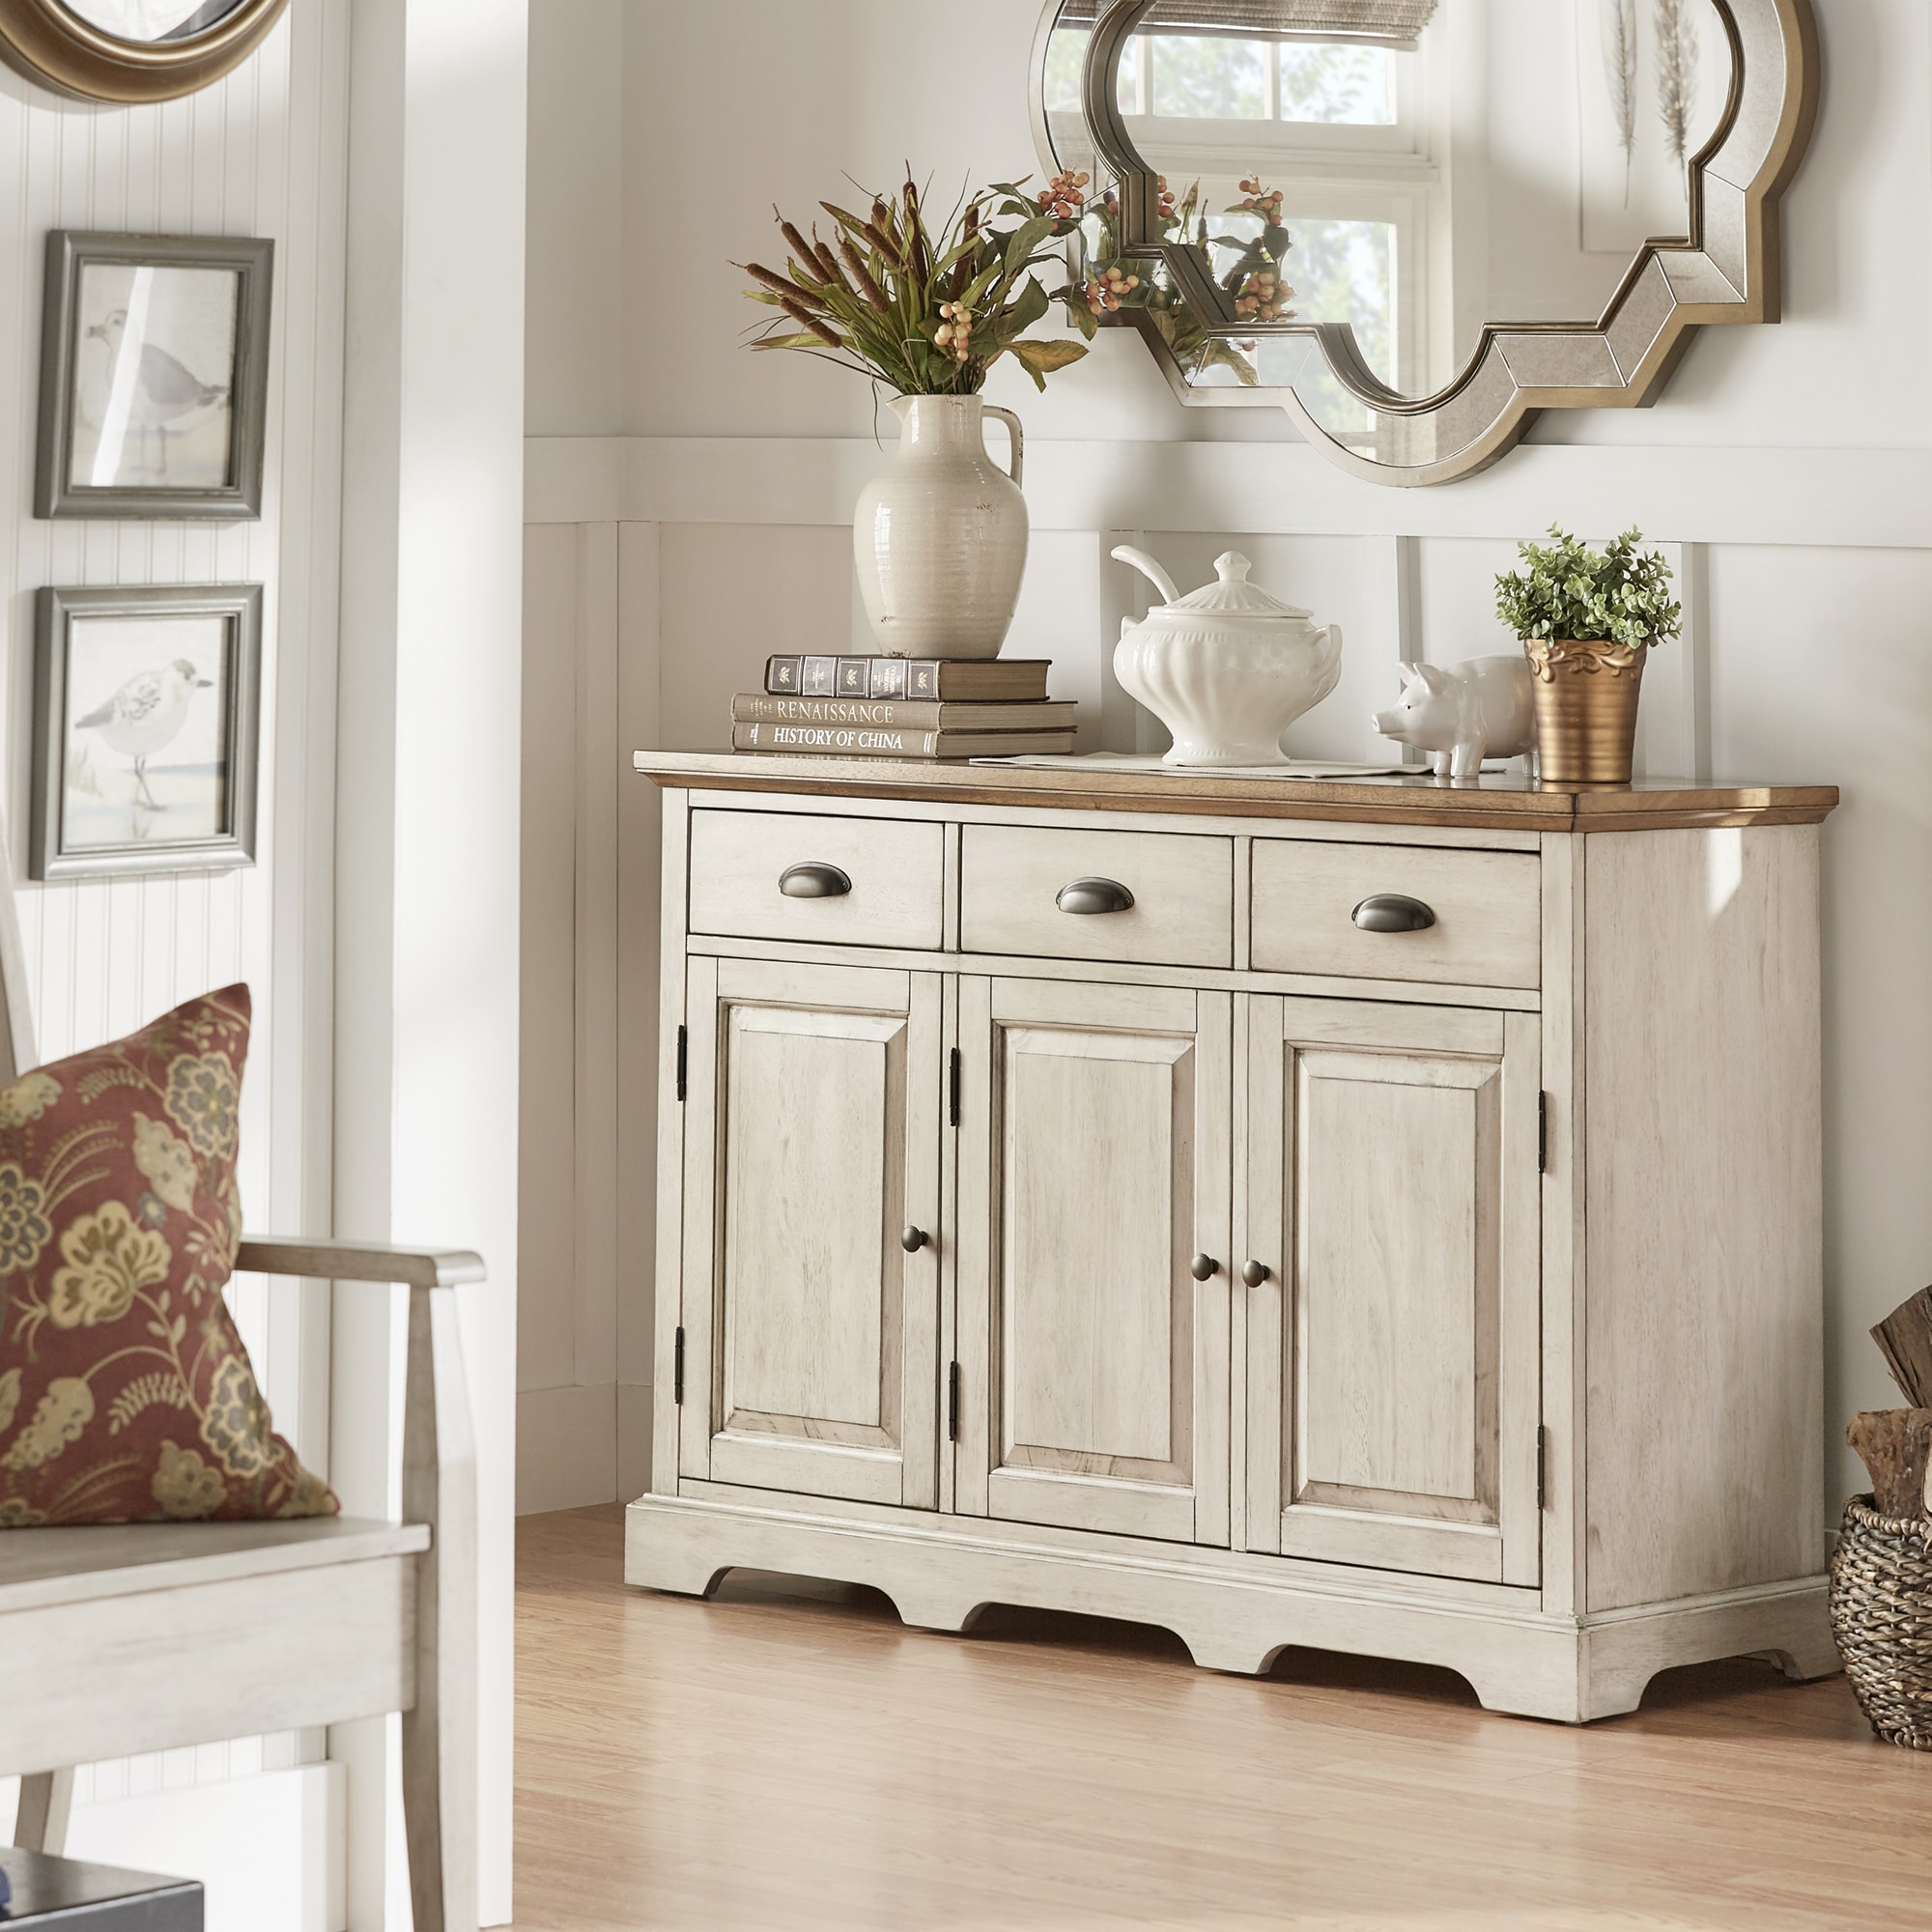 Eleanor Two Tone Wood Cabinet Buffet Server By INSPIRE Q Classic (3 Options  Available